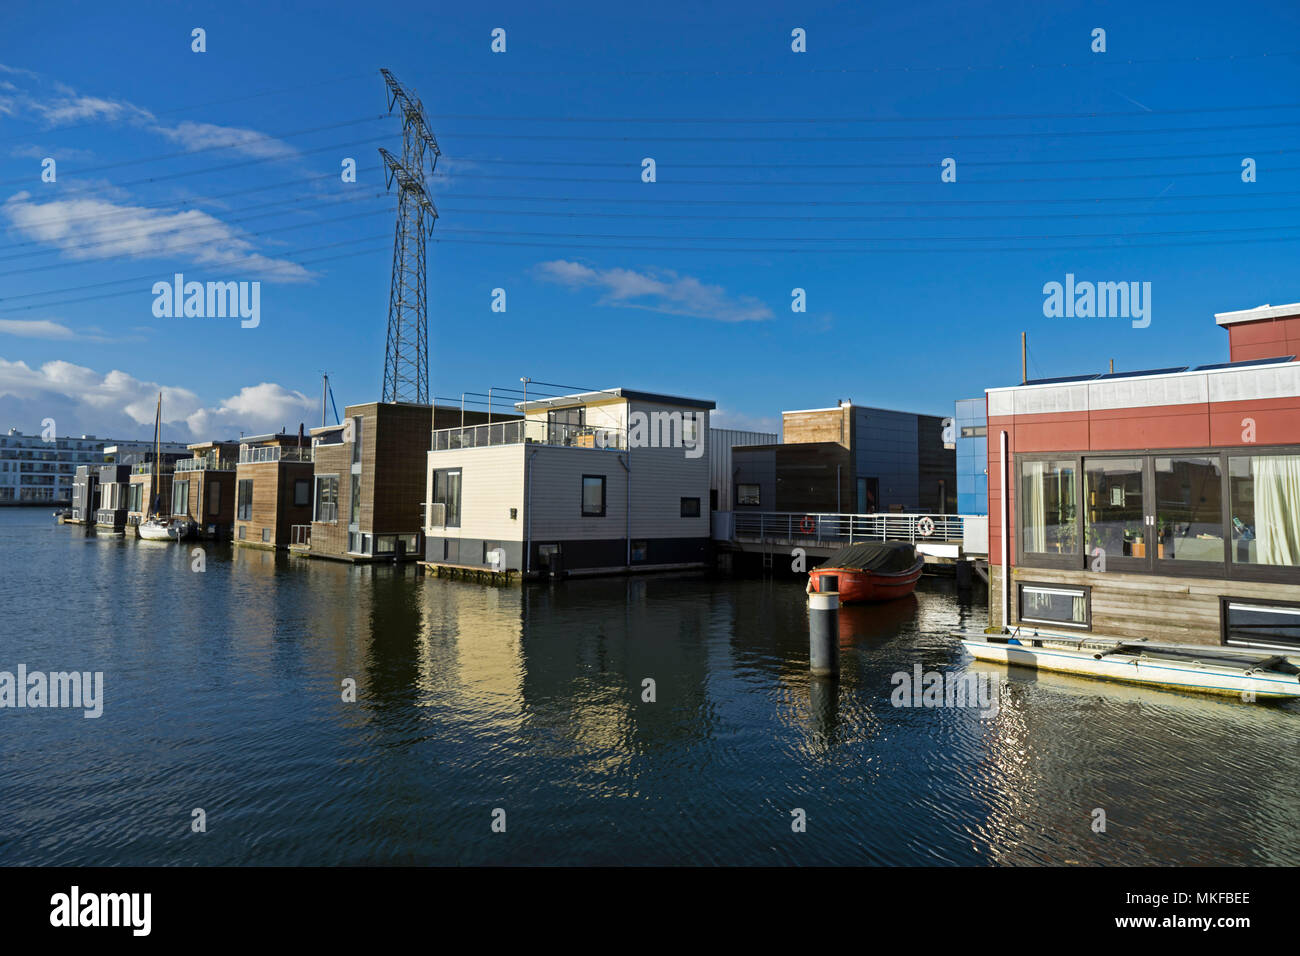 Floating house in the Ijburg district of Amsterdam, Holland, Netherlands Stock Photo